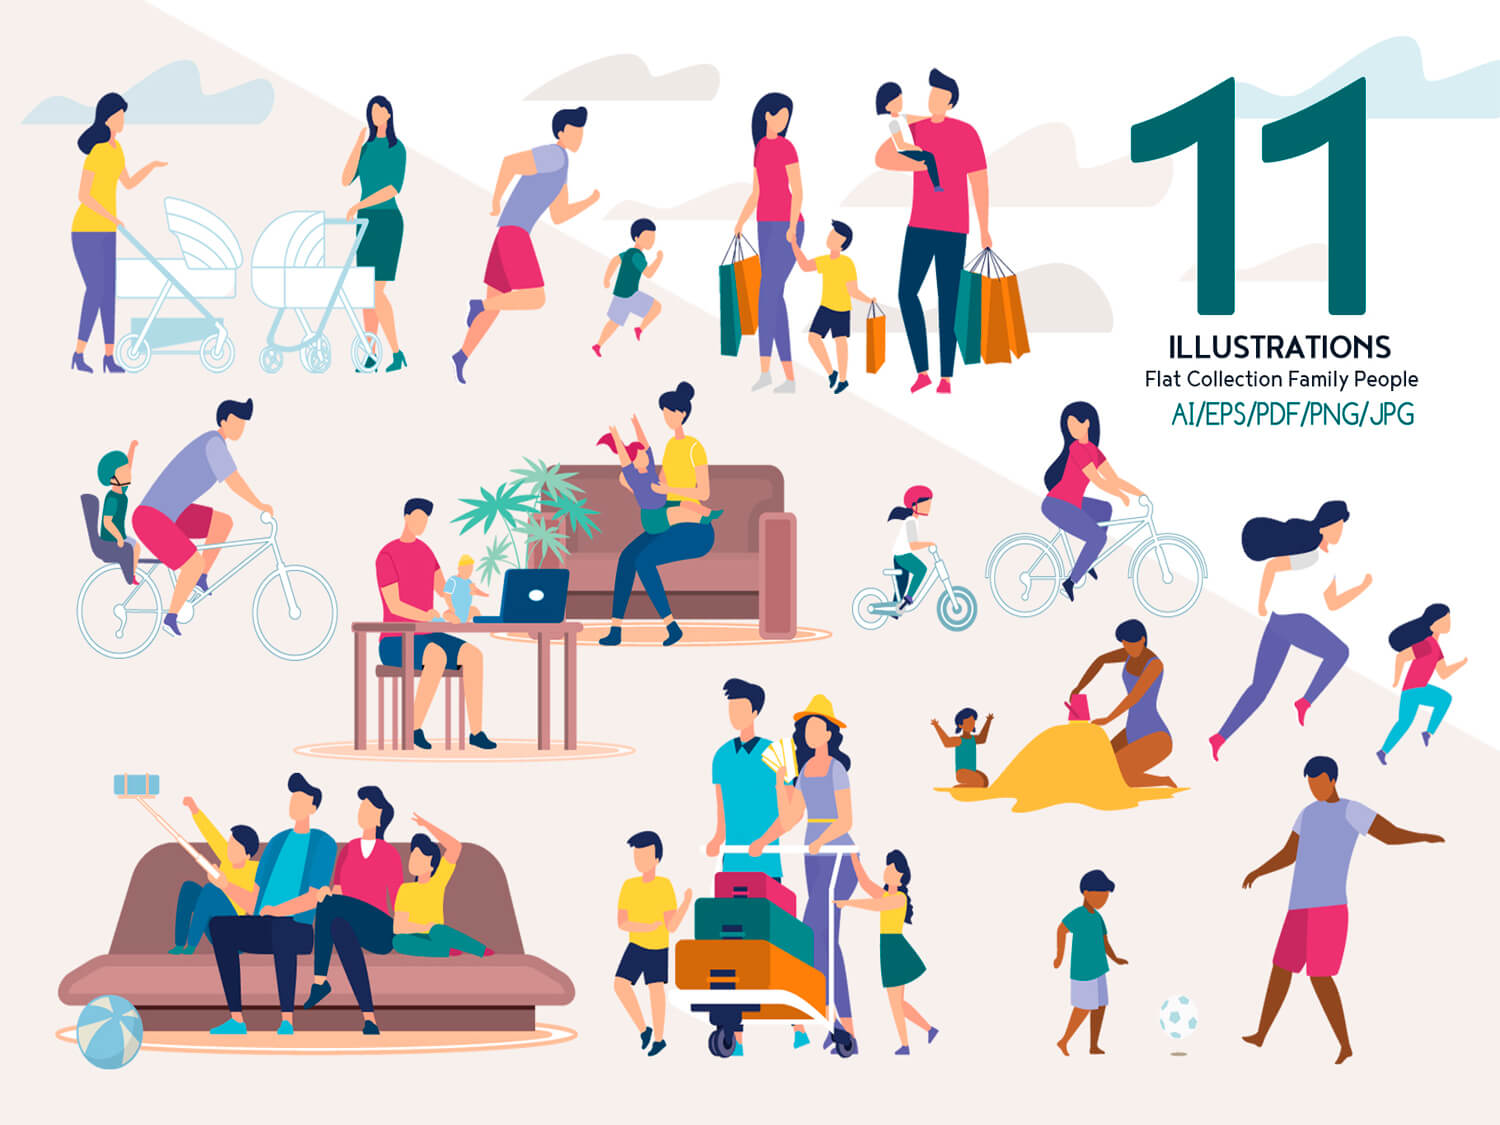 24-in-1 Flaticons Bundle: 11 Family People Vector Scenes